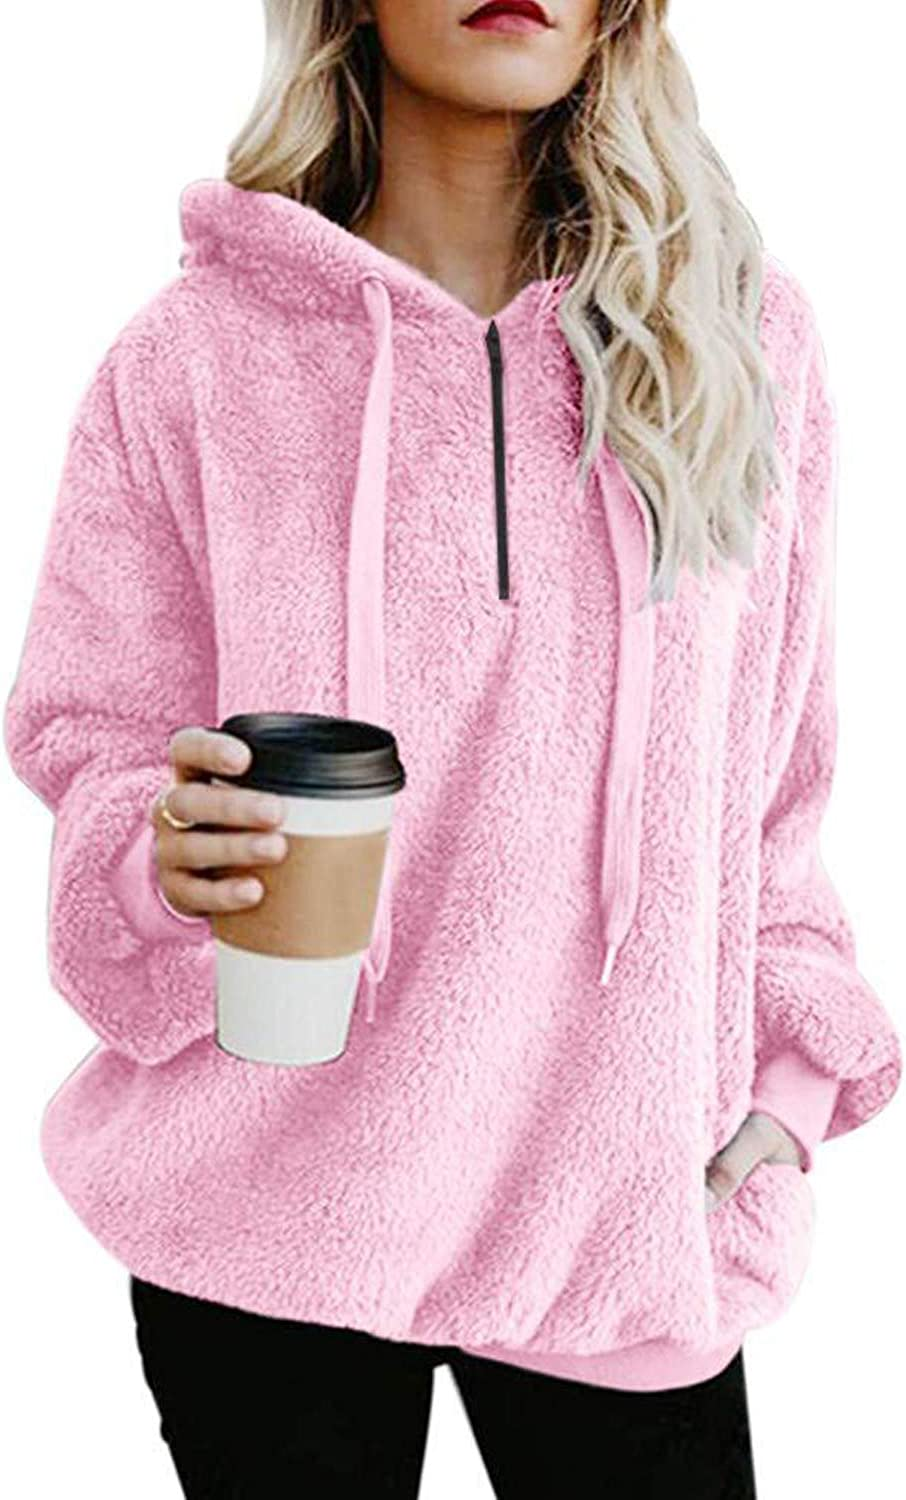 MayBest Women's Oversized Sherpa Pullover Hoodie with Pockets 1/4 Zip Sweatshirt Pink US XXX-Large